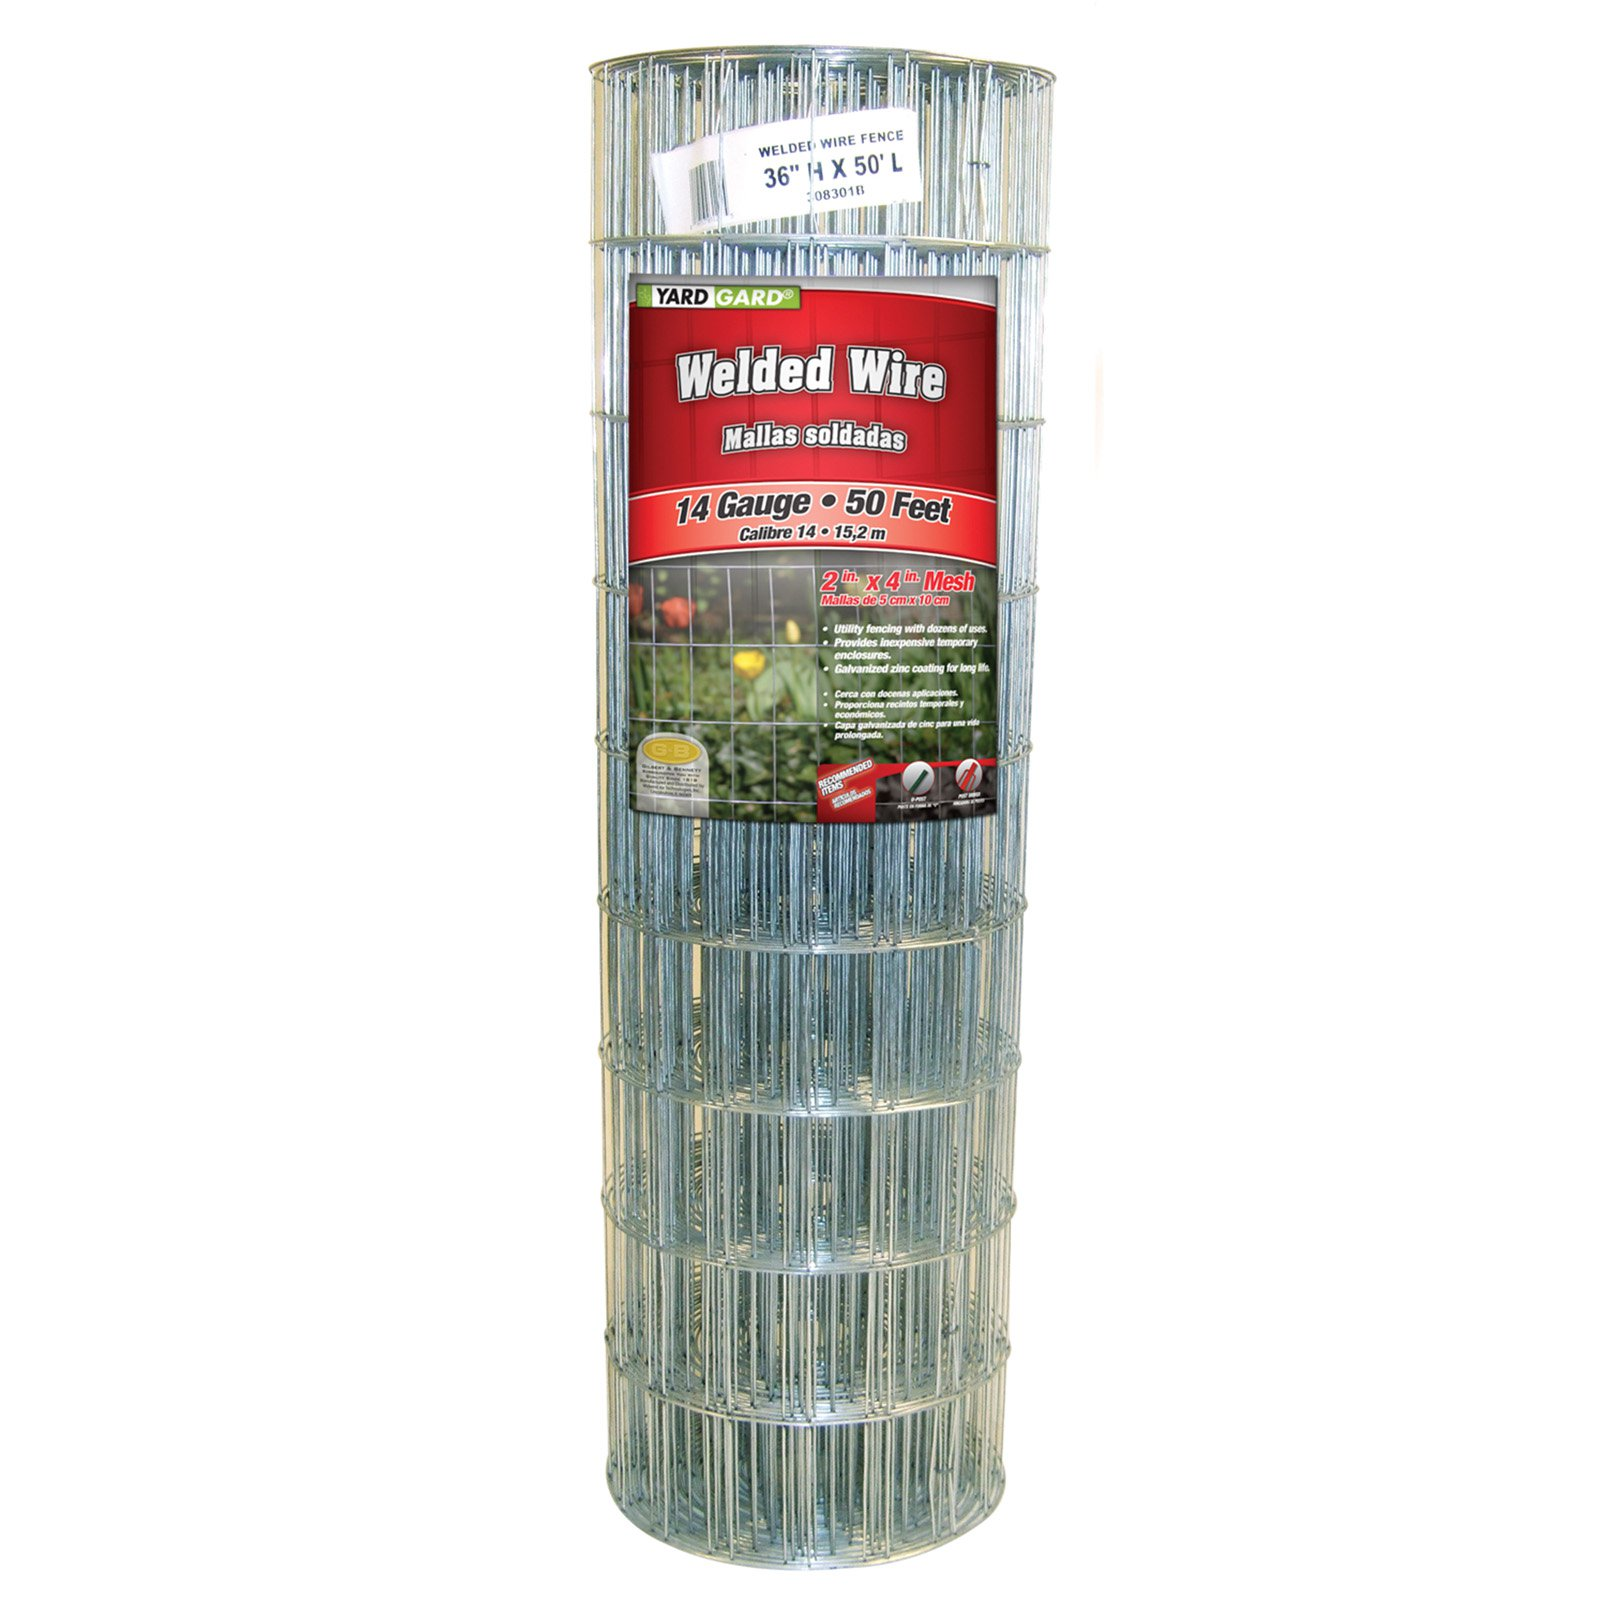 YARDGARD 36 Inch by 50 Foot Galvanized Welded Wire Fence by Midwest Air Technologies